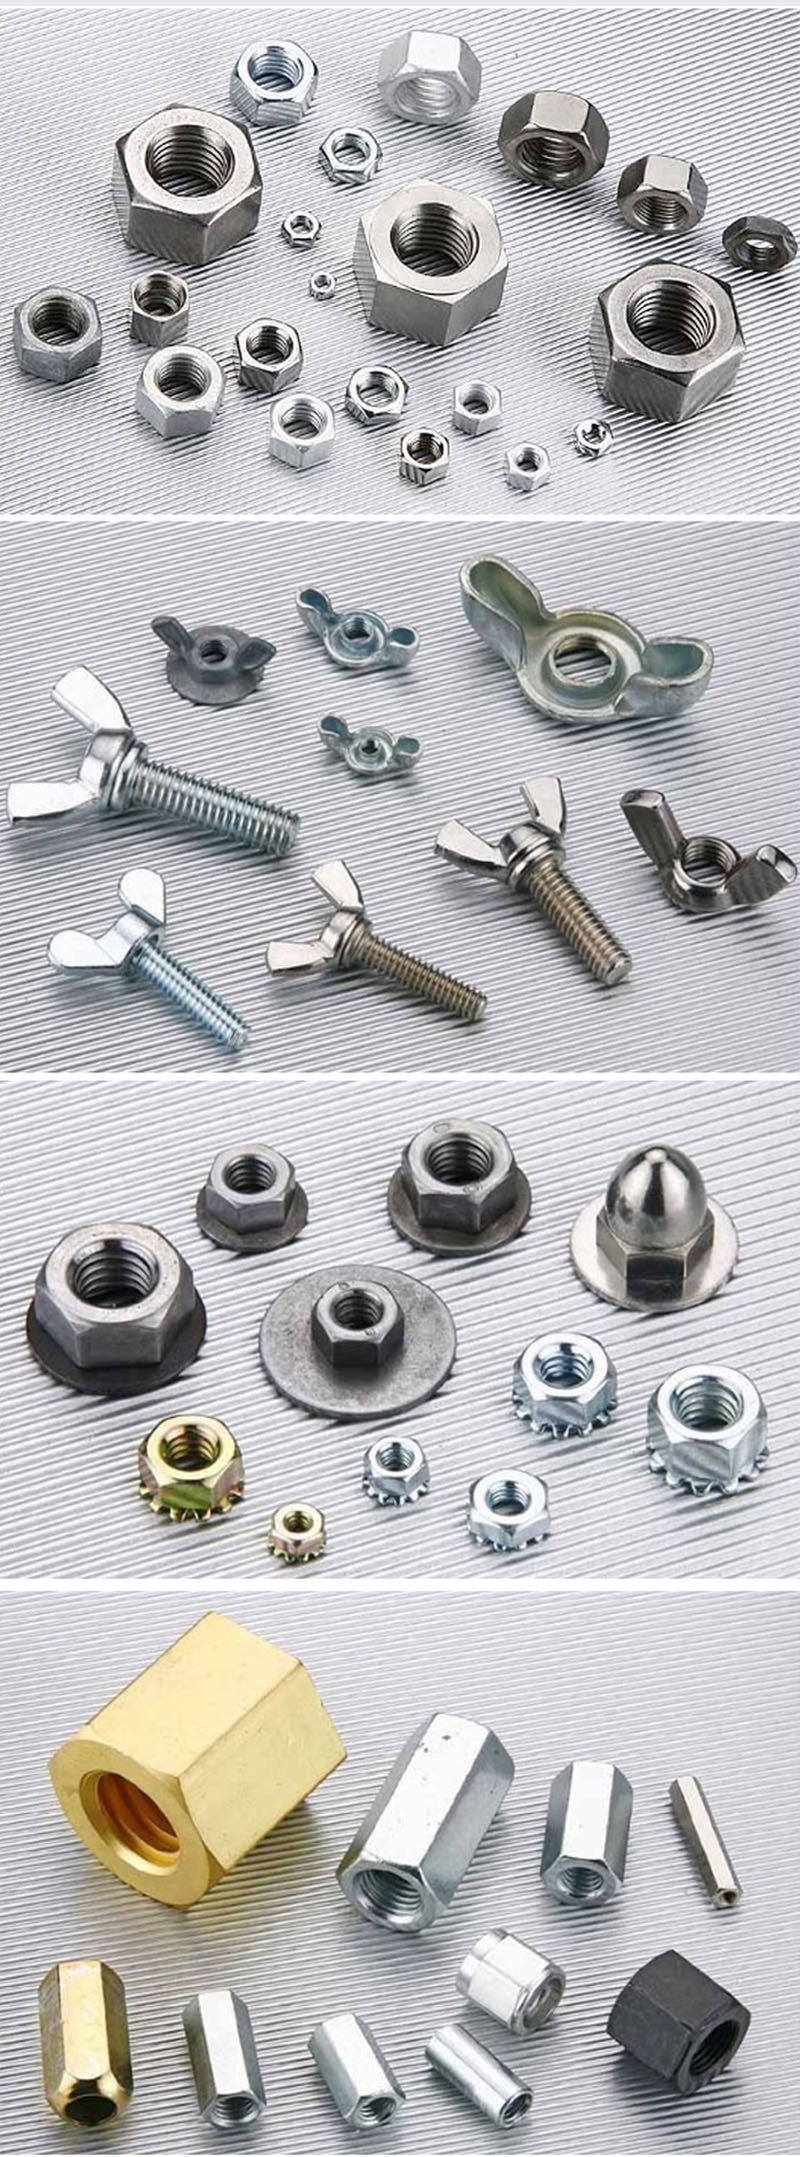 Hex Washer Head Self Tapping Screw